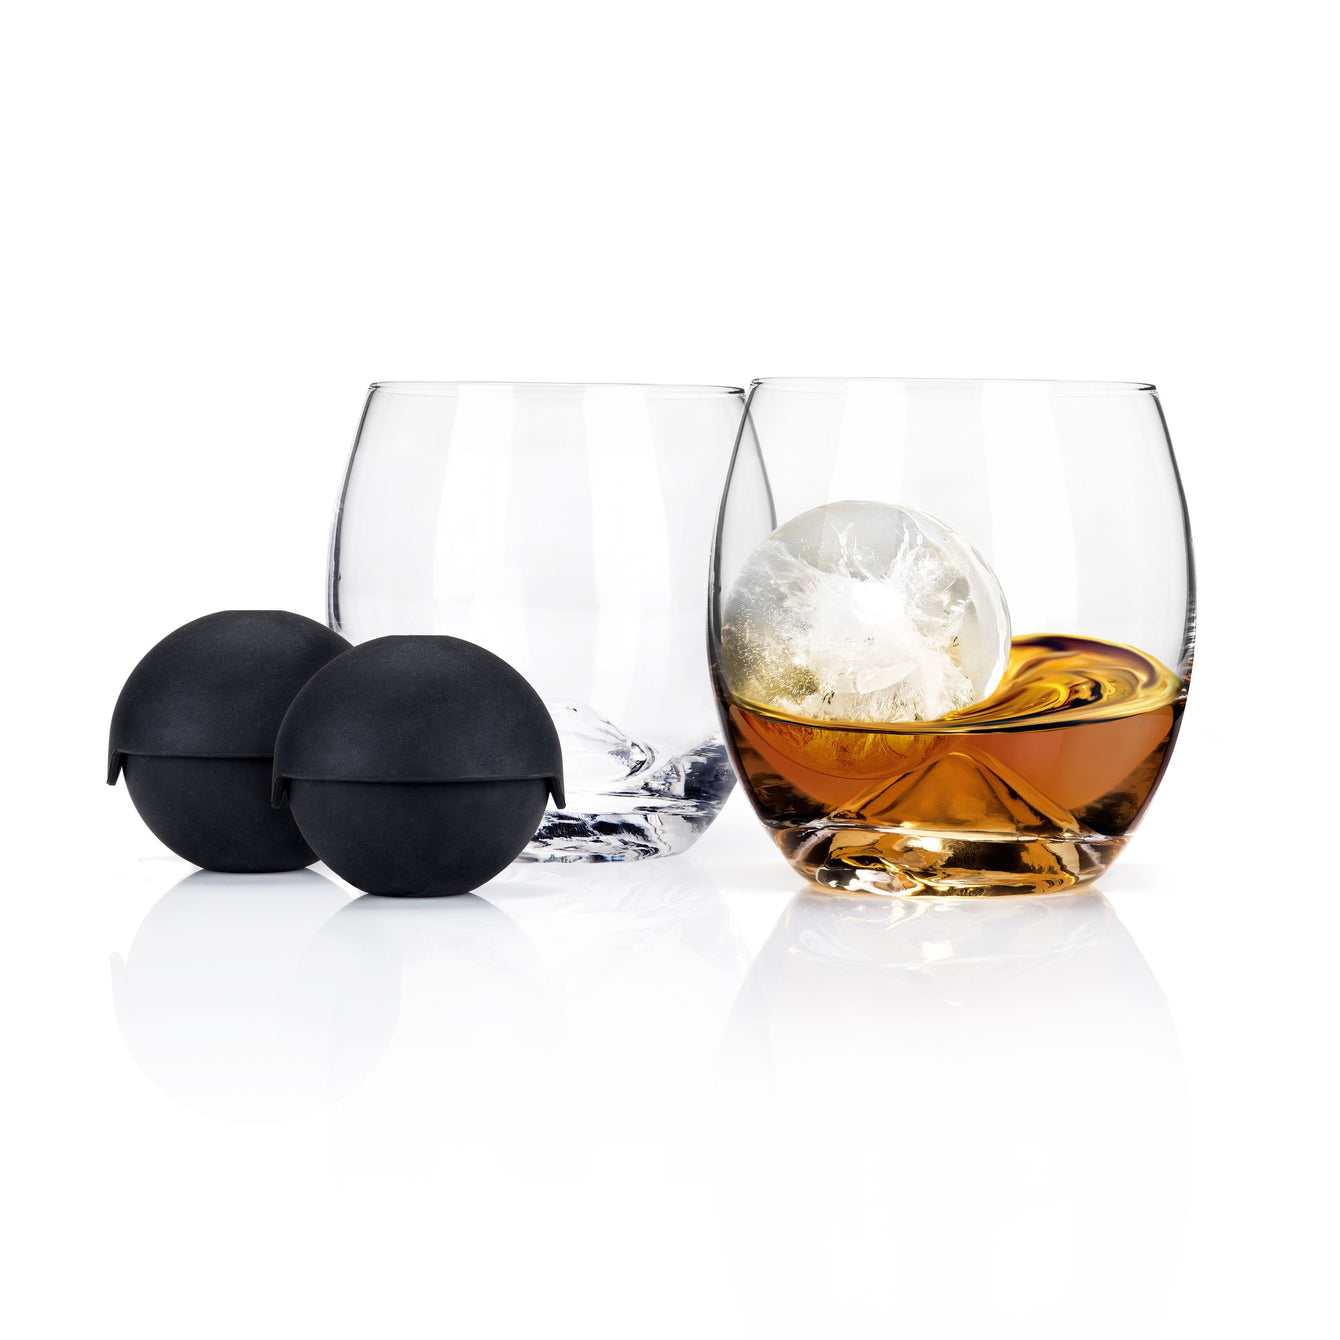 Ice Ball Mold and Lead-Free Crystal Tumbler Set of 2-Home - Entertaining - Chilling Cubes Sets-VISKI-Peccadilly